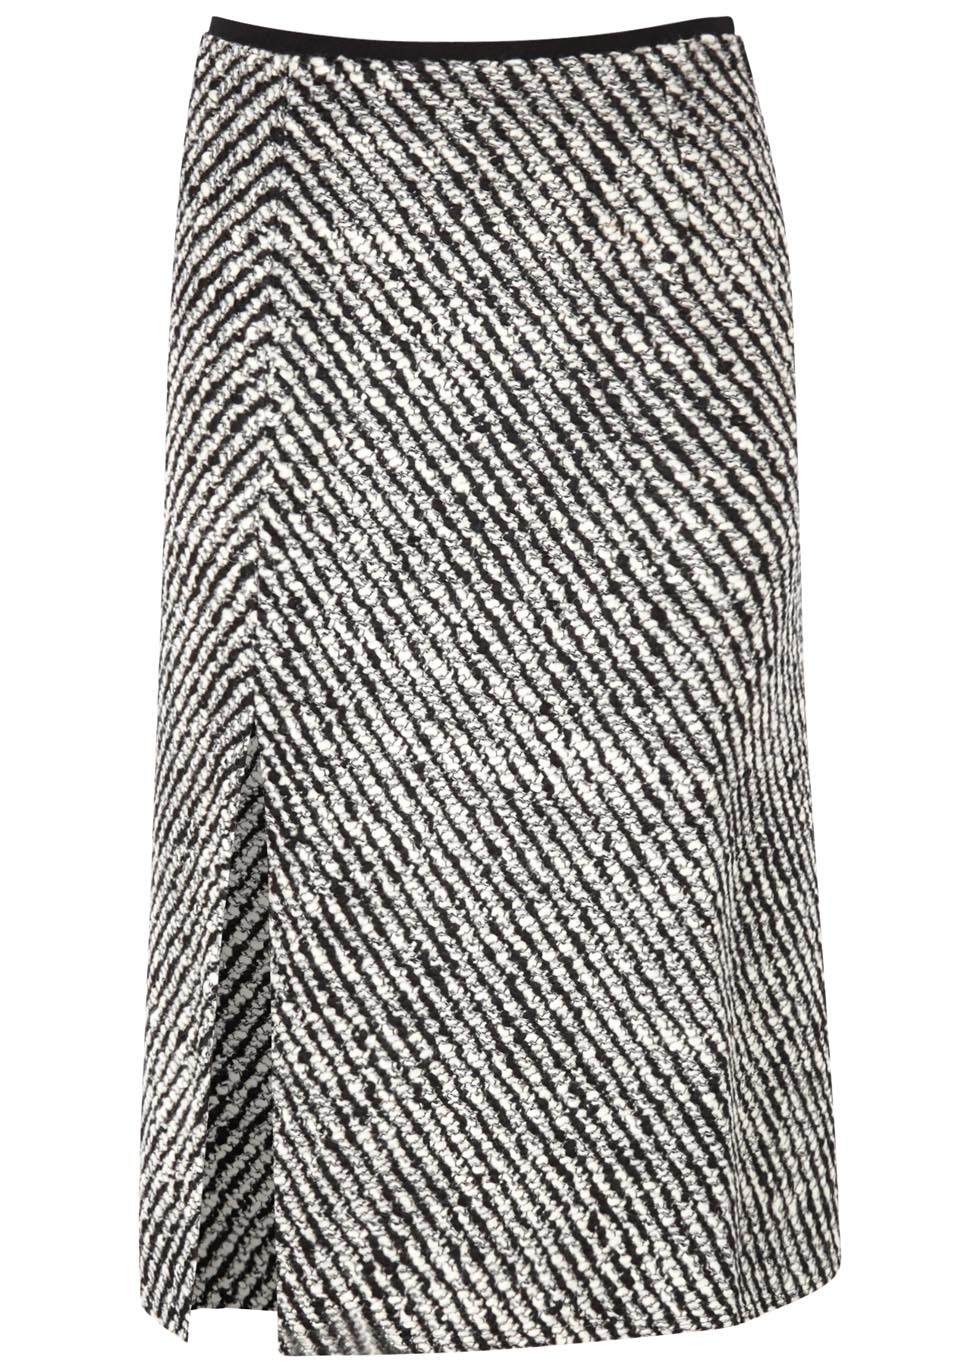 Inko Bouclé Tweed Midi Skirt - length: below the knee; style: straight; pattern: herringbone/tweed; waist: mid/regular rise; predominant colour: white; secondary colour: black; occasions: work, creative work; fibres: wool - mix; fit: straight cut; pattern type: knitted - other; texture group: tweed - light/midweight; pattern size: standard (bottom); season: a/w 2016